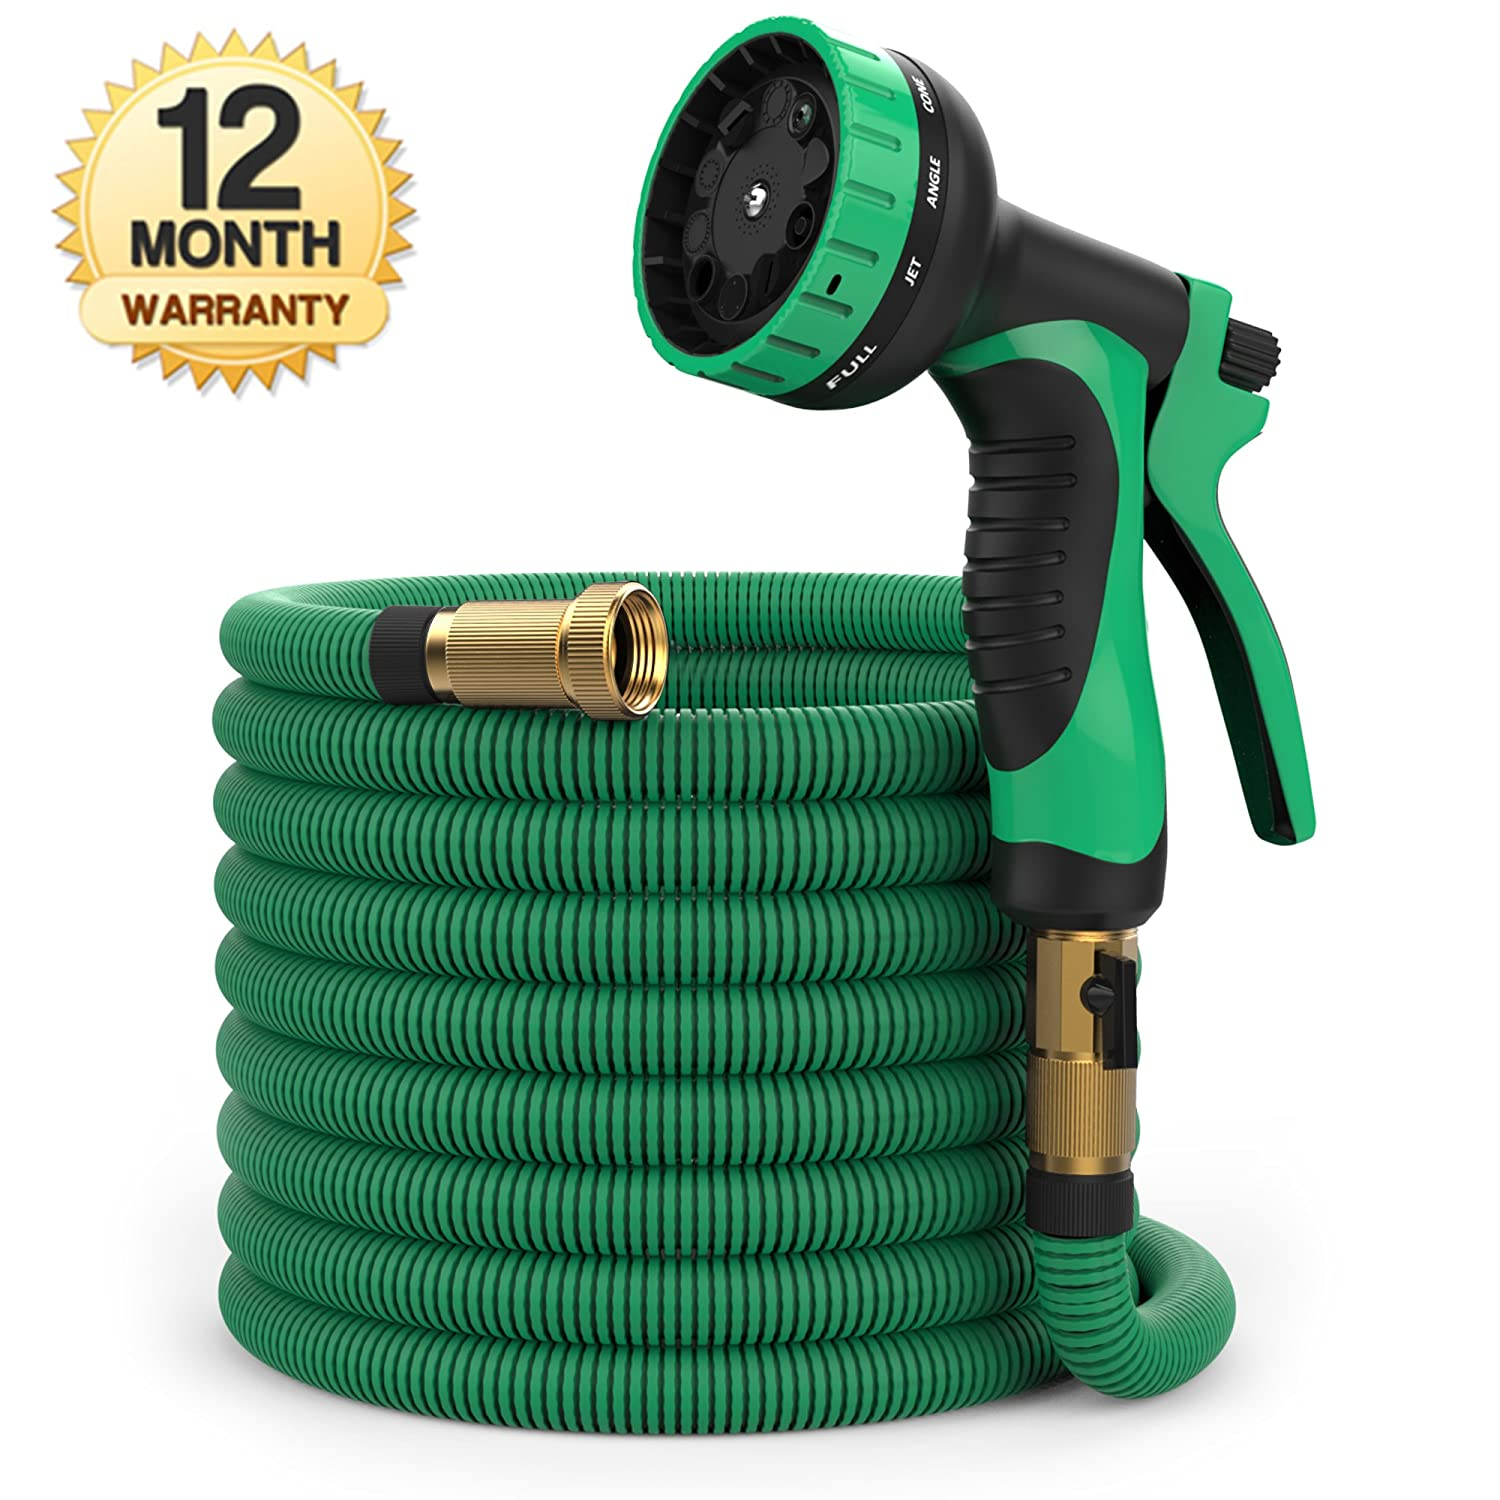 Stretch hose nz